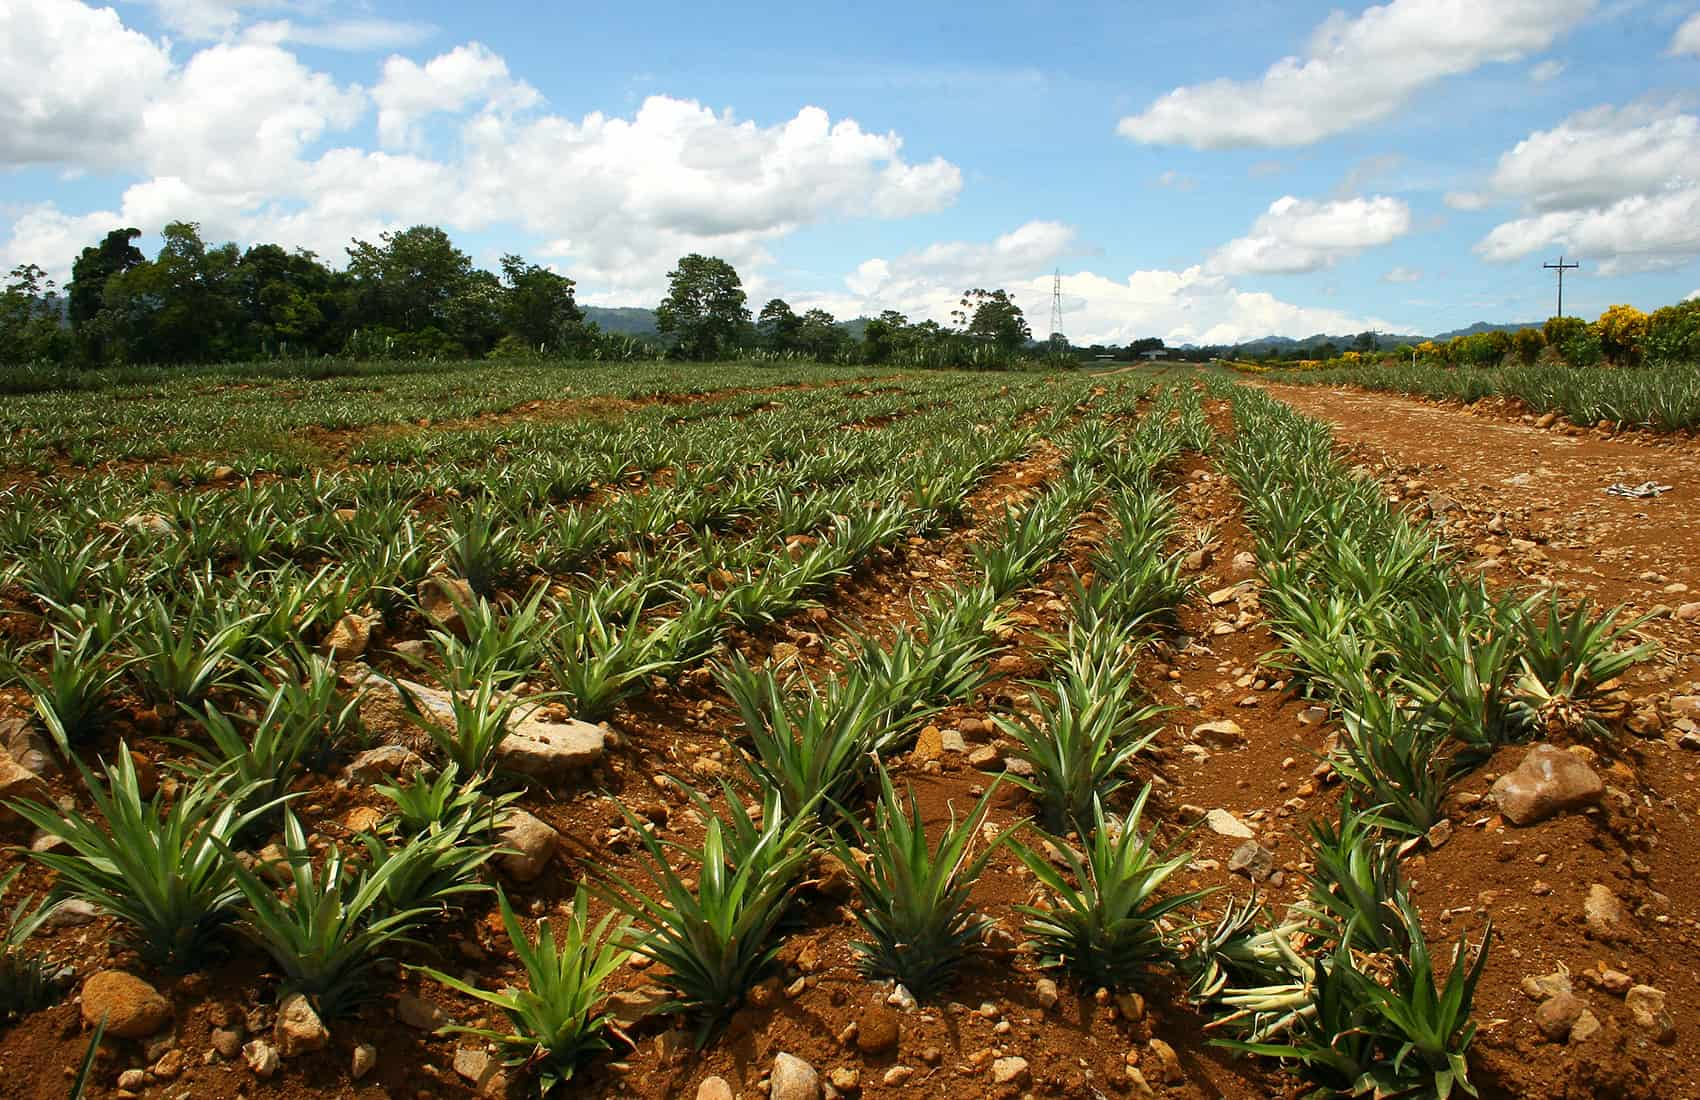 Pineapple farm in Costa Rica